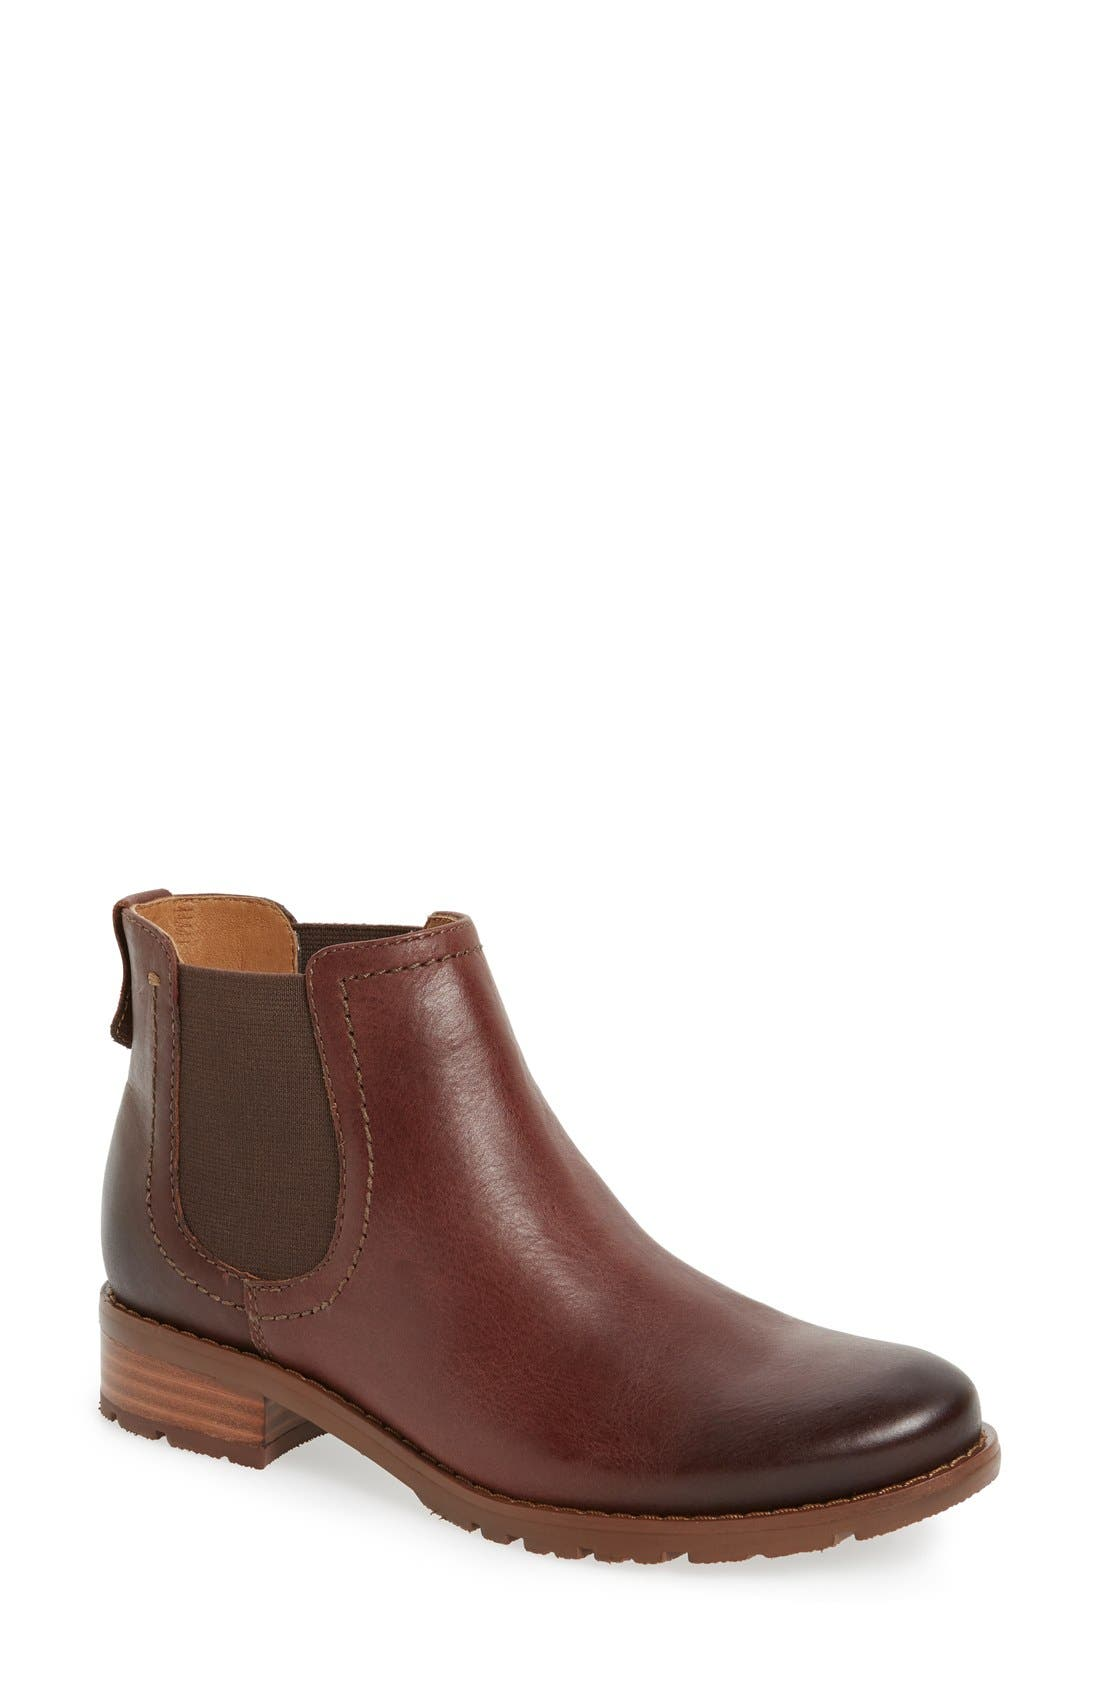 'Selby' Chelsea Bootie,                             Main thumbnail 8, color,